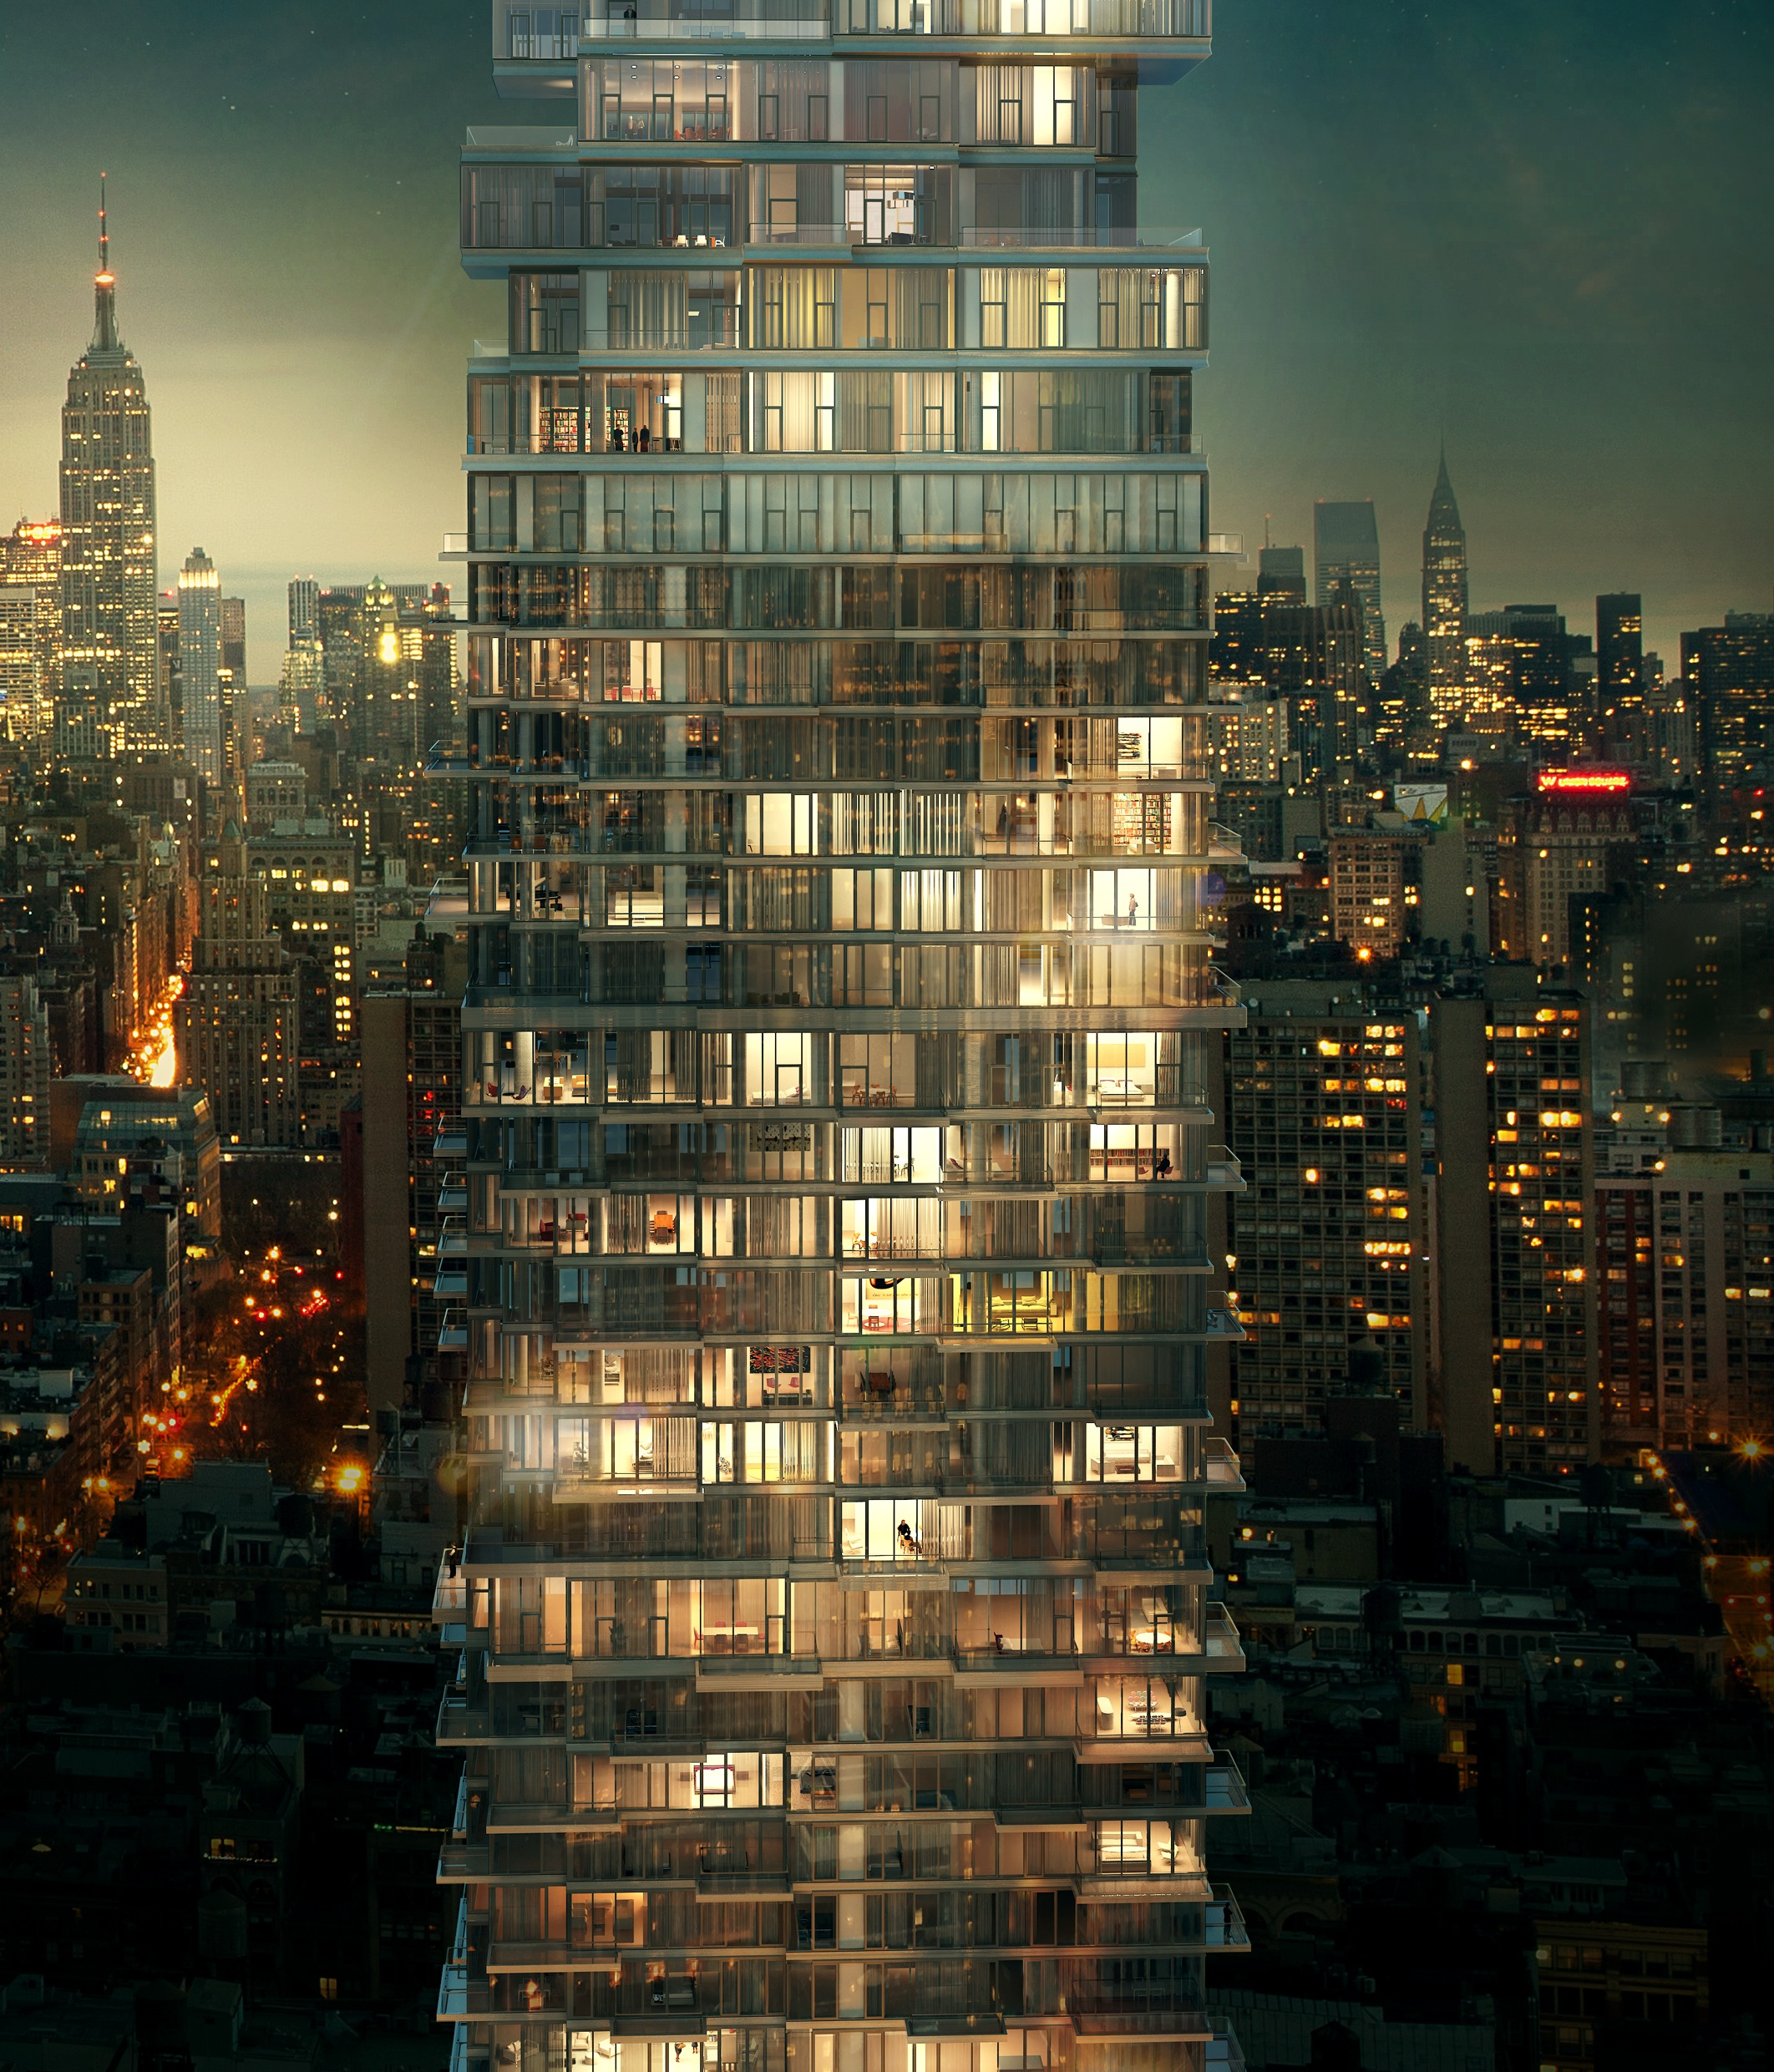 Looking For Apartments In Nyc: Iconic, New Luxury Condos For Sale In NYC